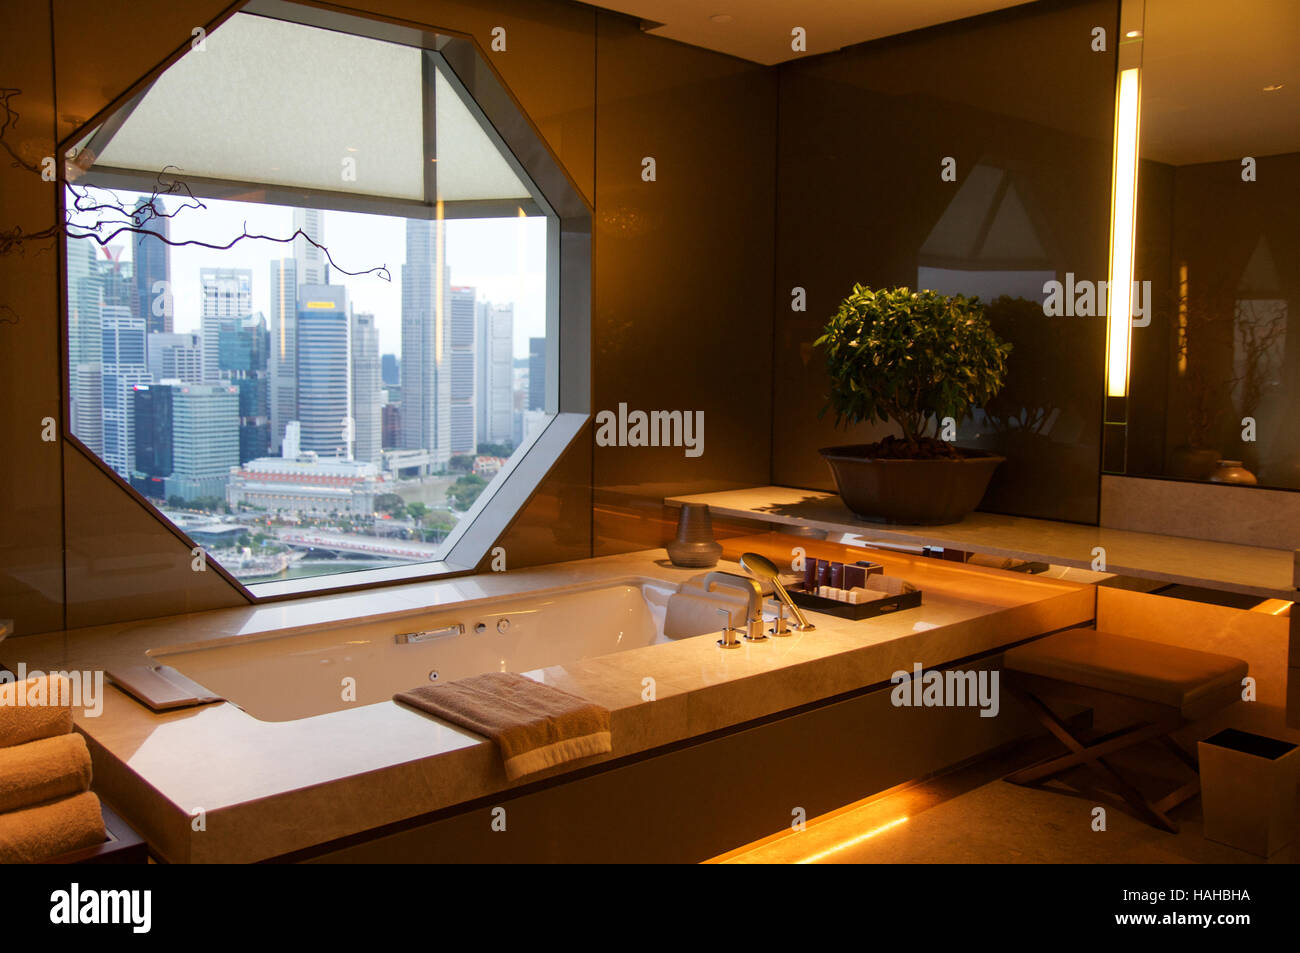 singapore july 23rd 2016 luxury hotel room with modern interior beautiful large bathroom marble